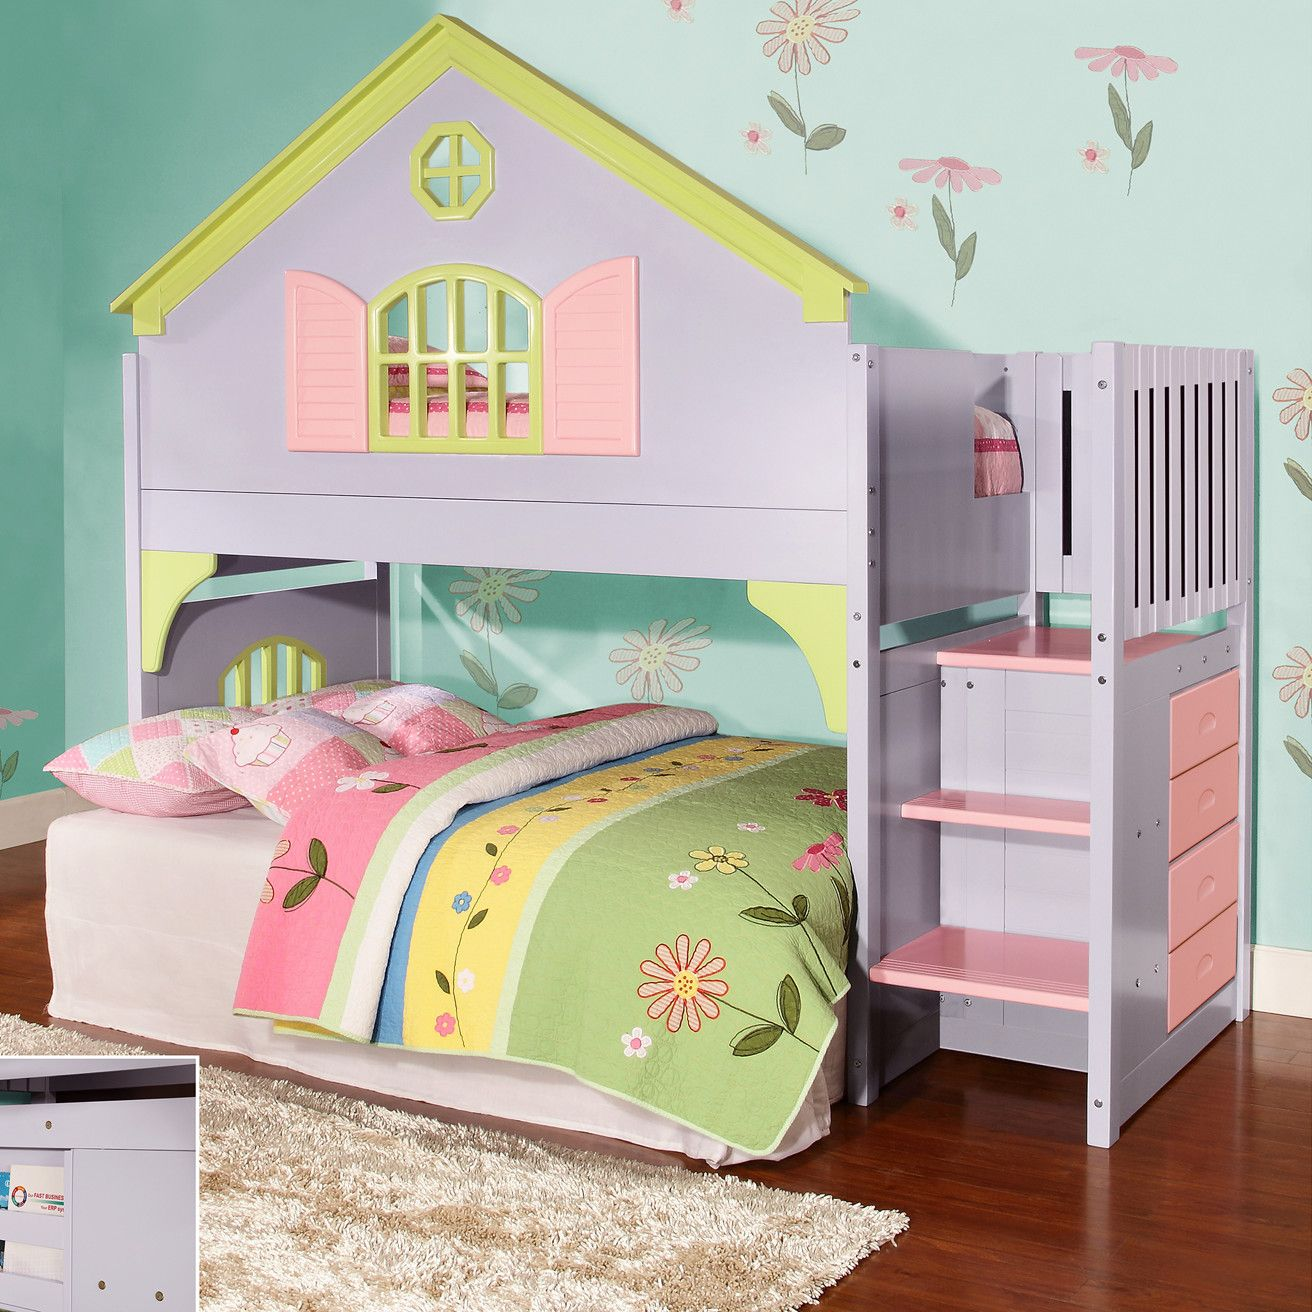 Donco kids donco kids twin doll house loft bed with Best kids bedroom furniture